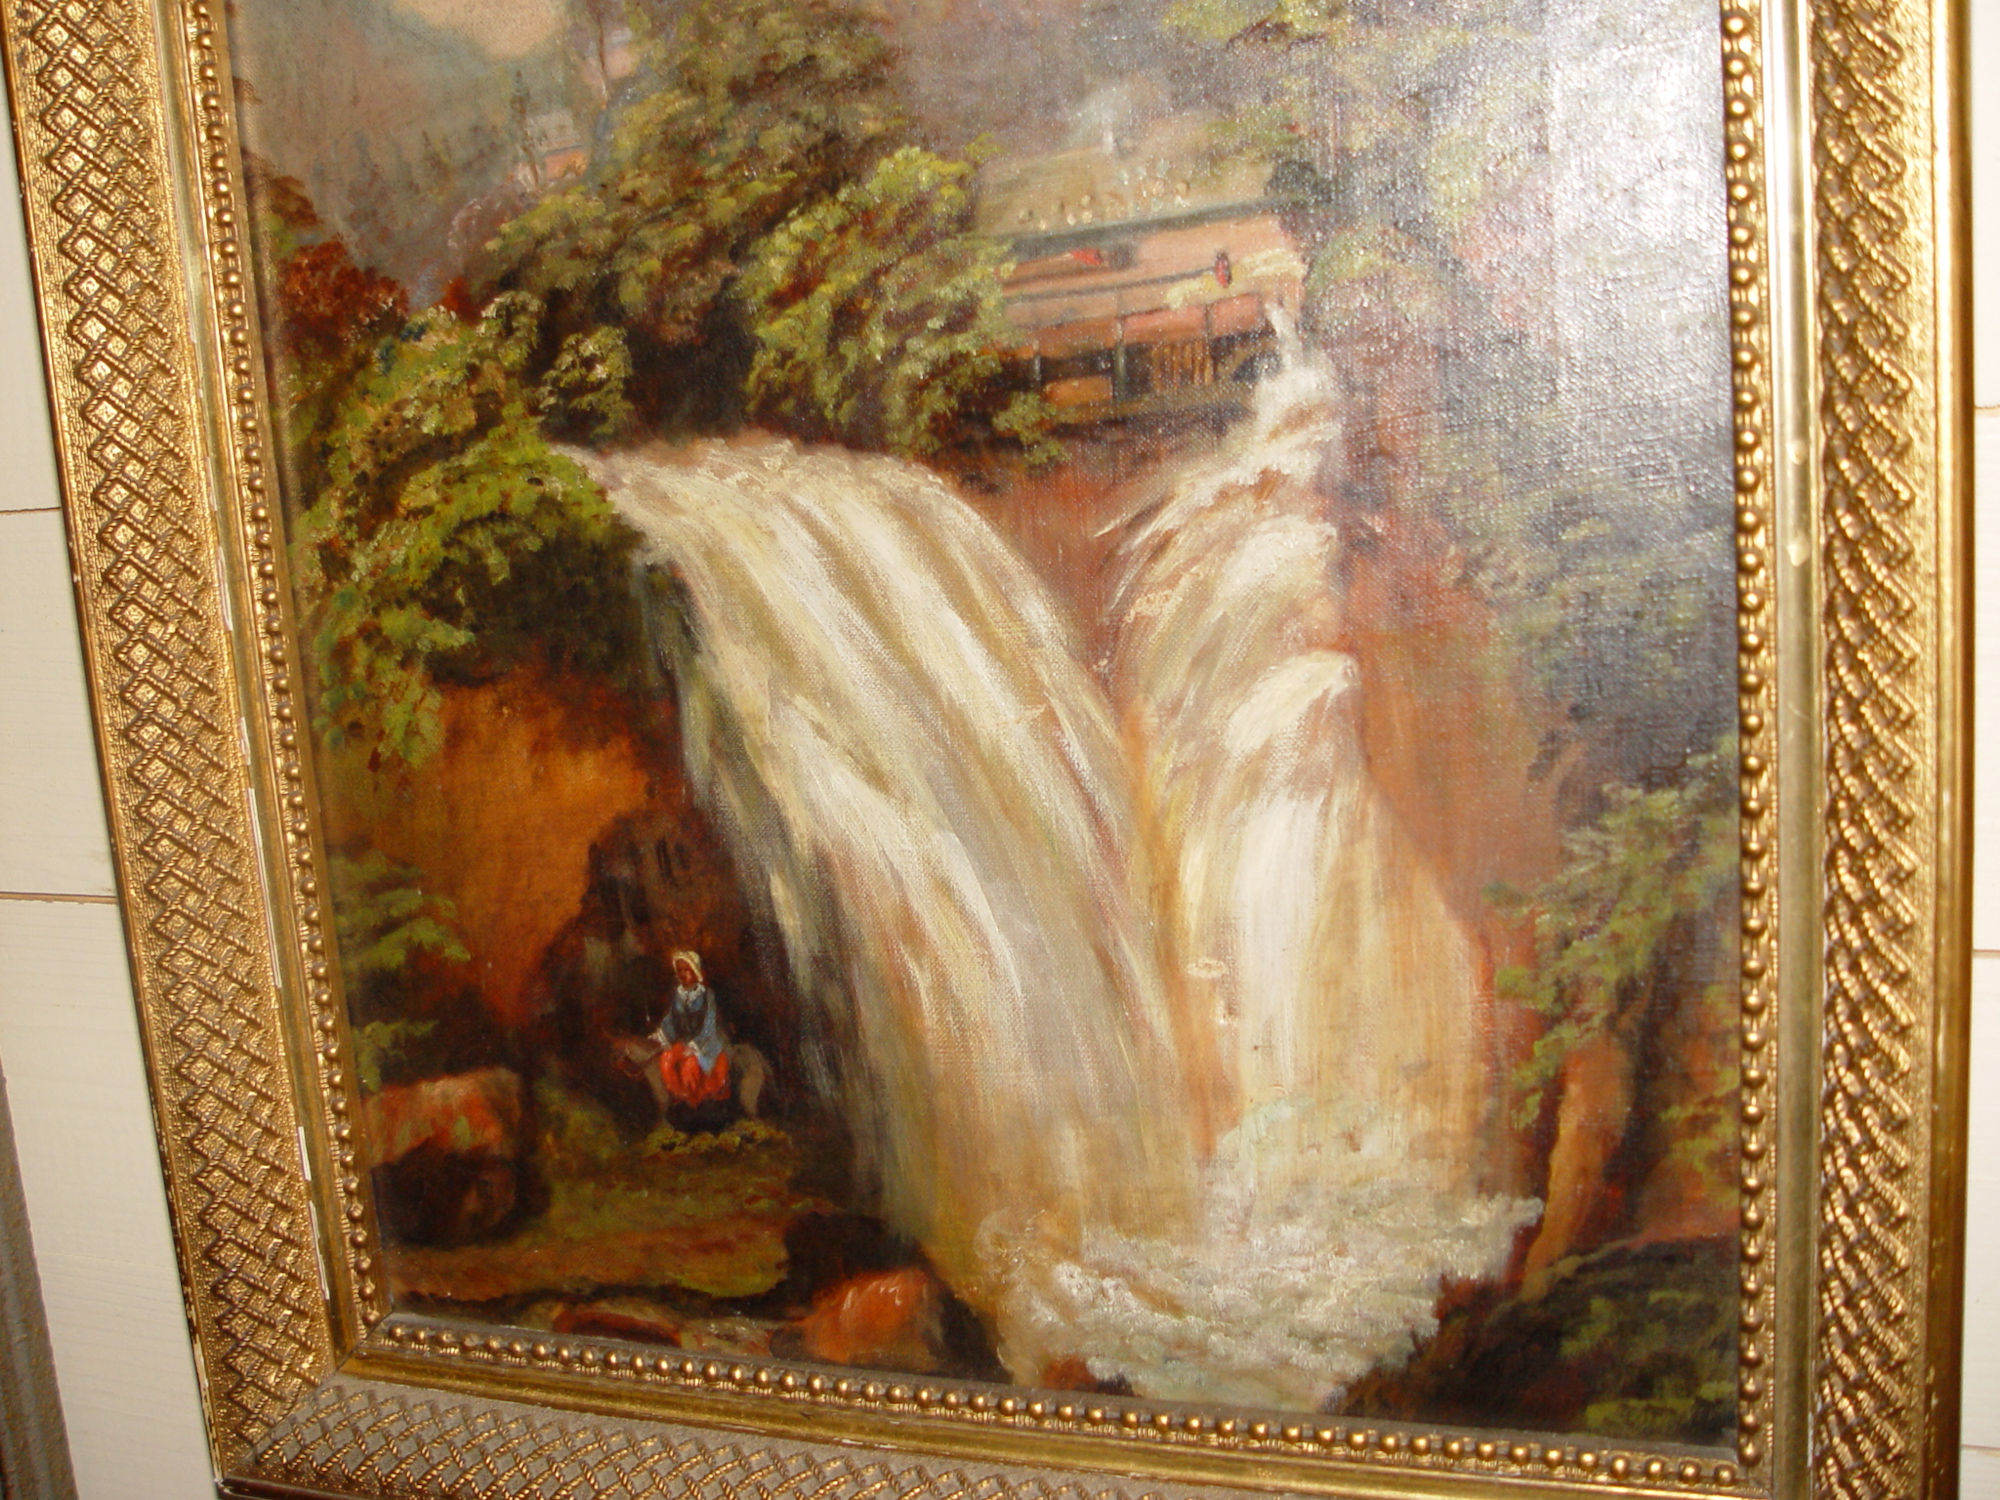 Indiana waterfall landscape                                         oil on canvas Ca: 1880's